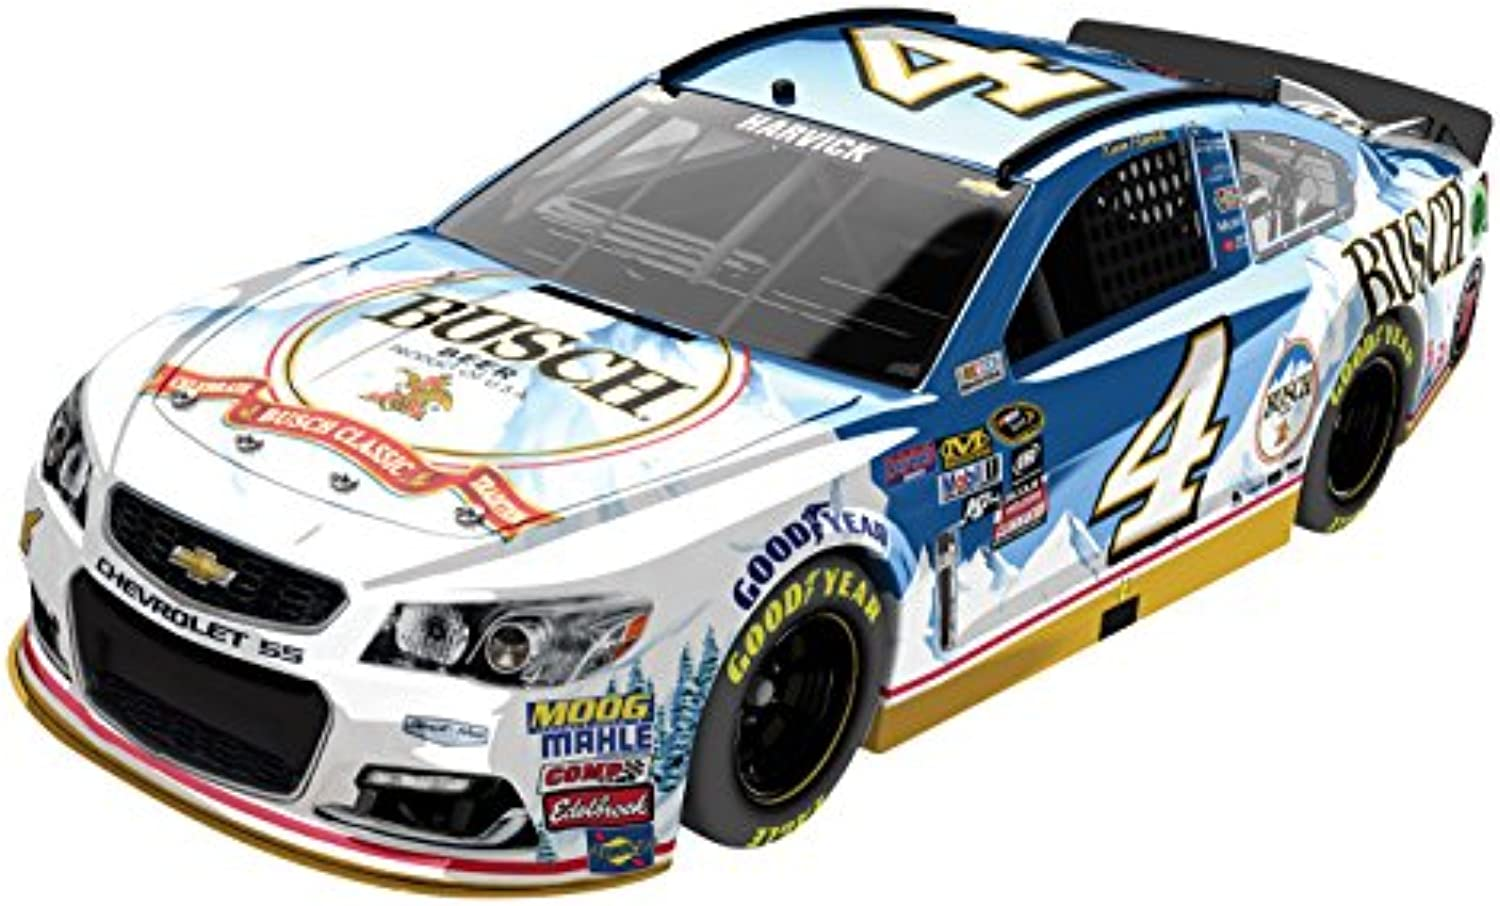 Lionel Racing Kevin Harvick  4 Busch Beer 2016 Chevrolet SS NASCAR Diecast Car (1 24 Scale), Chrome